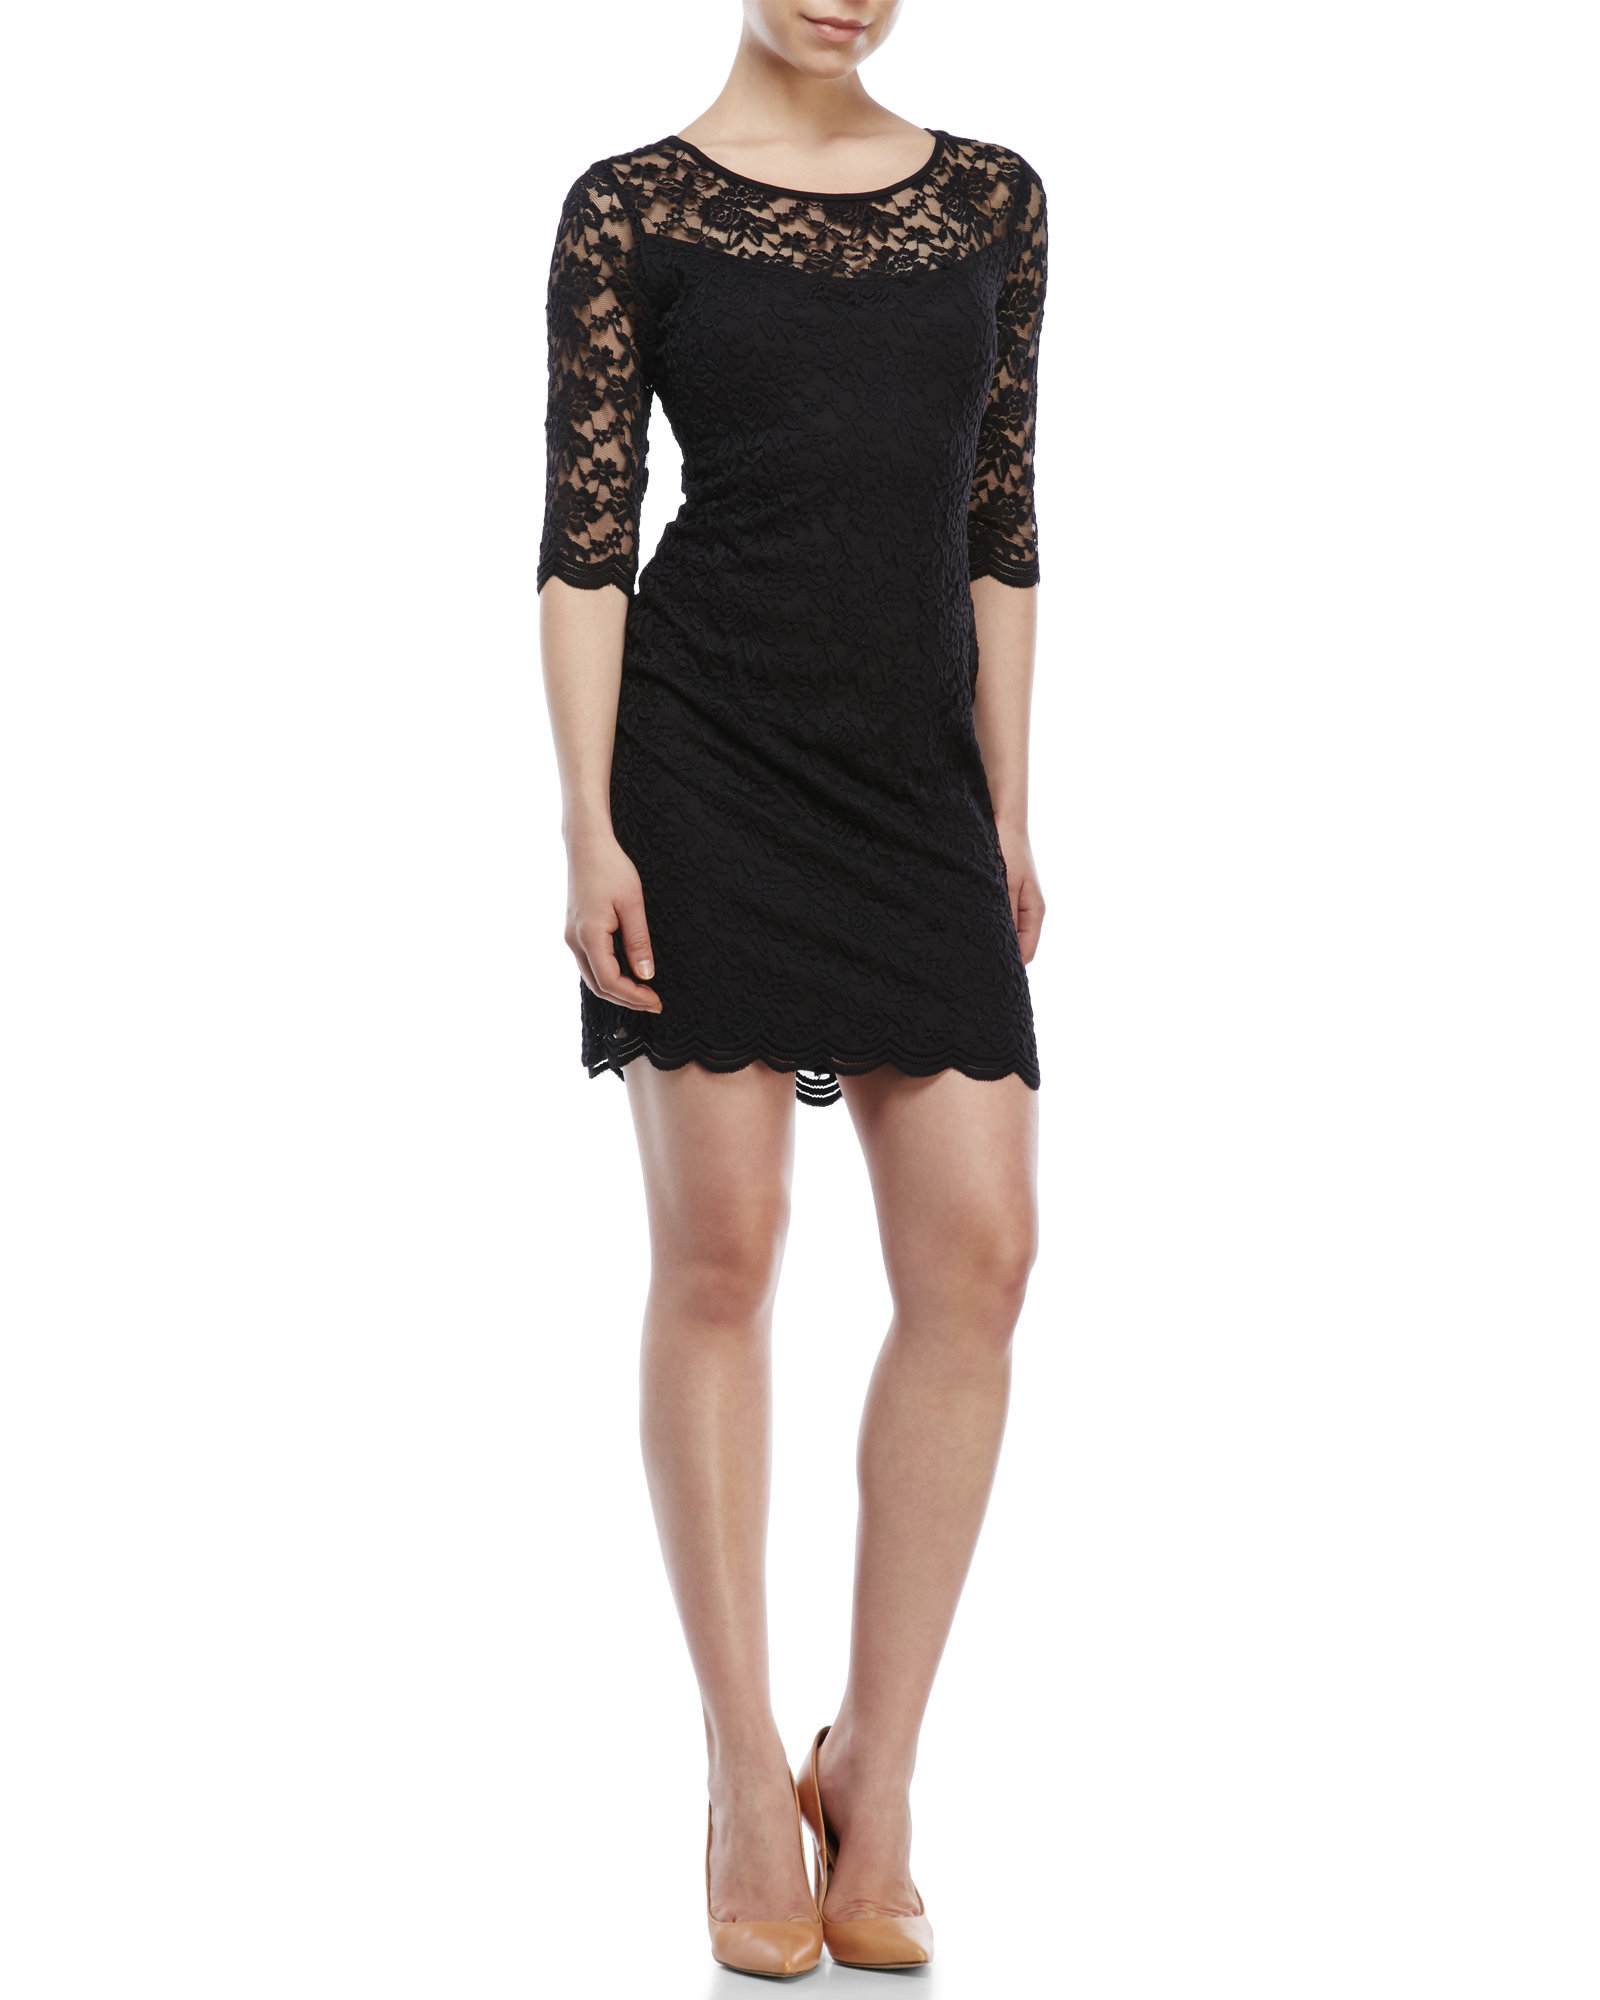 Black Illusion Dress: Connected Apparel Petite Lace Illusion Dress In Black